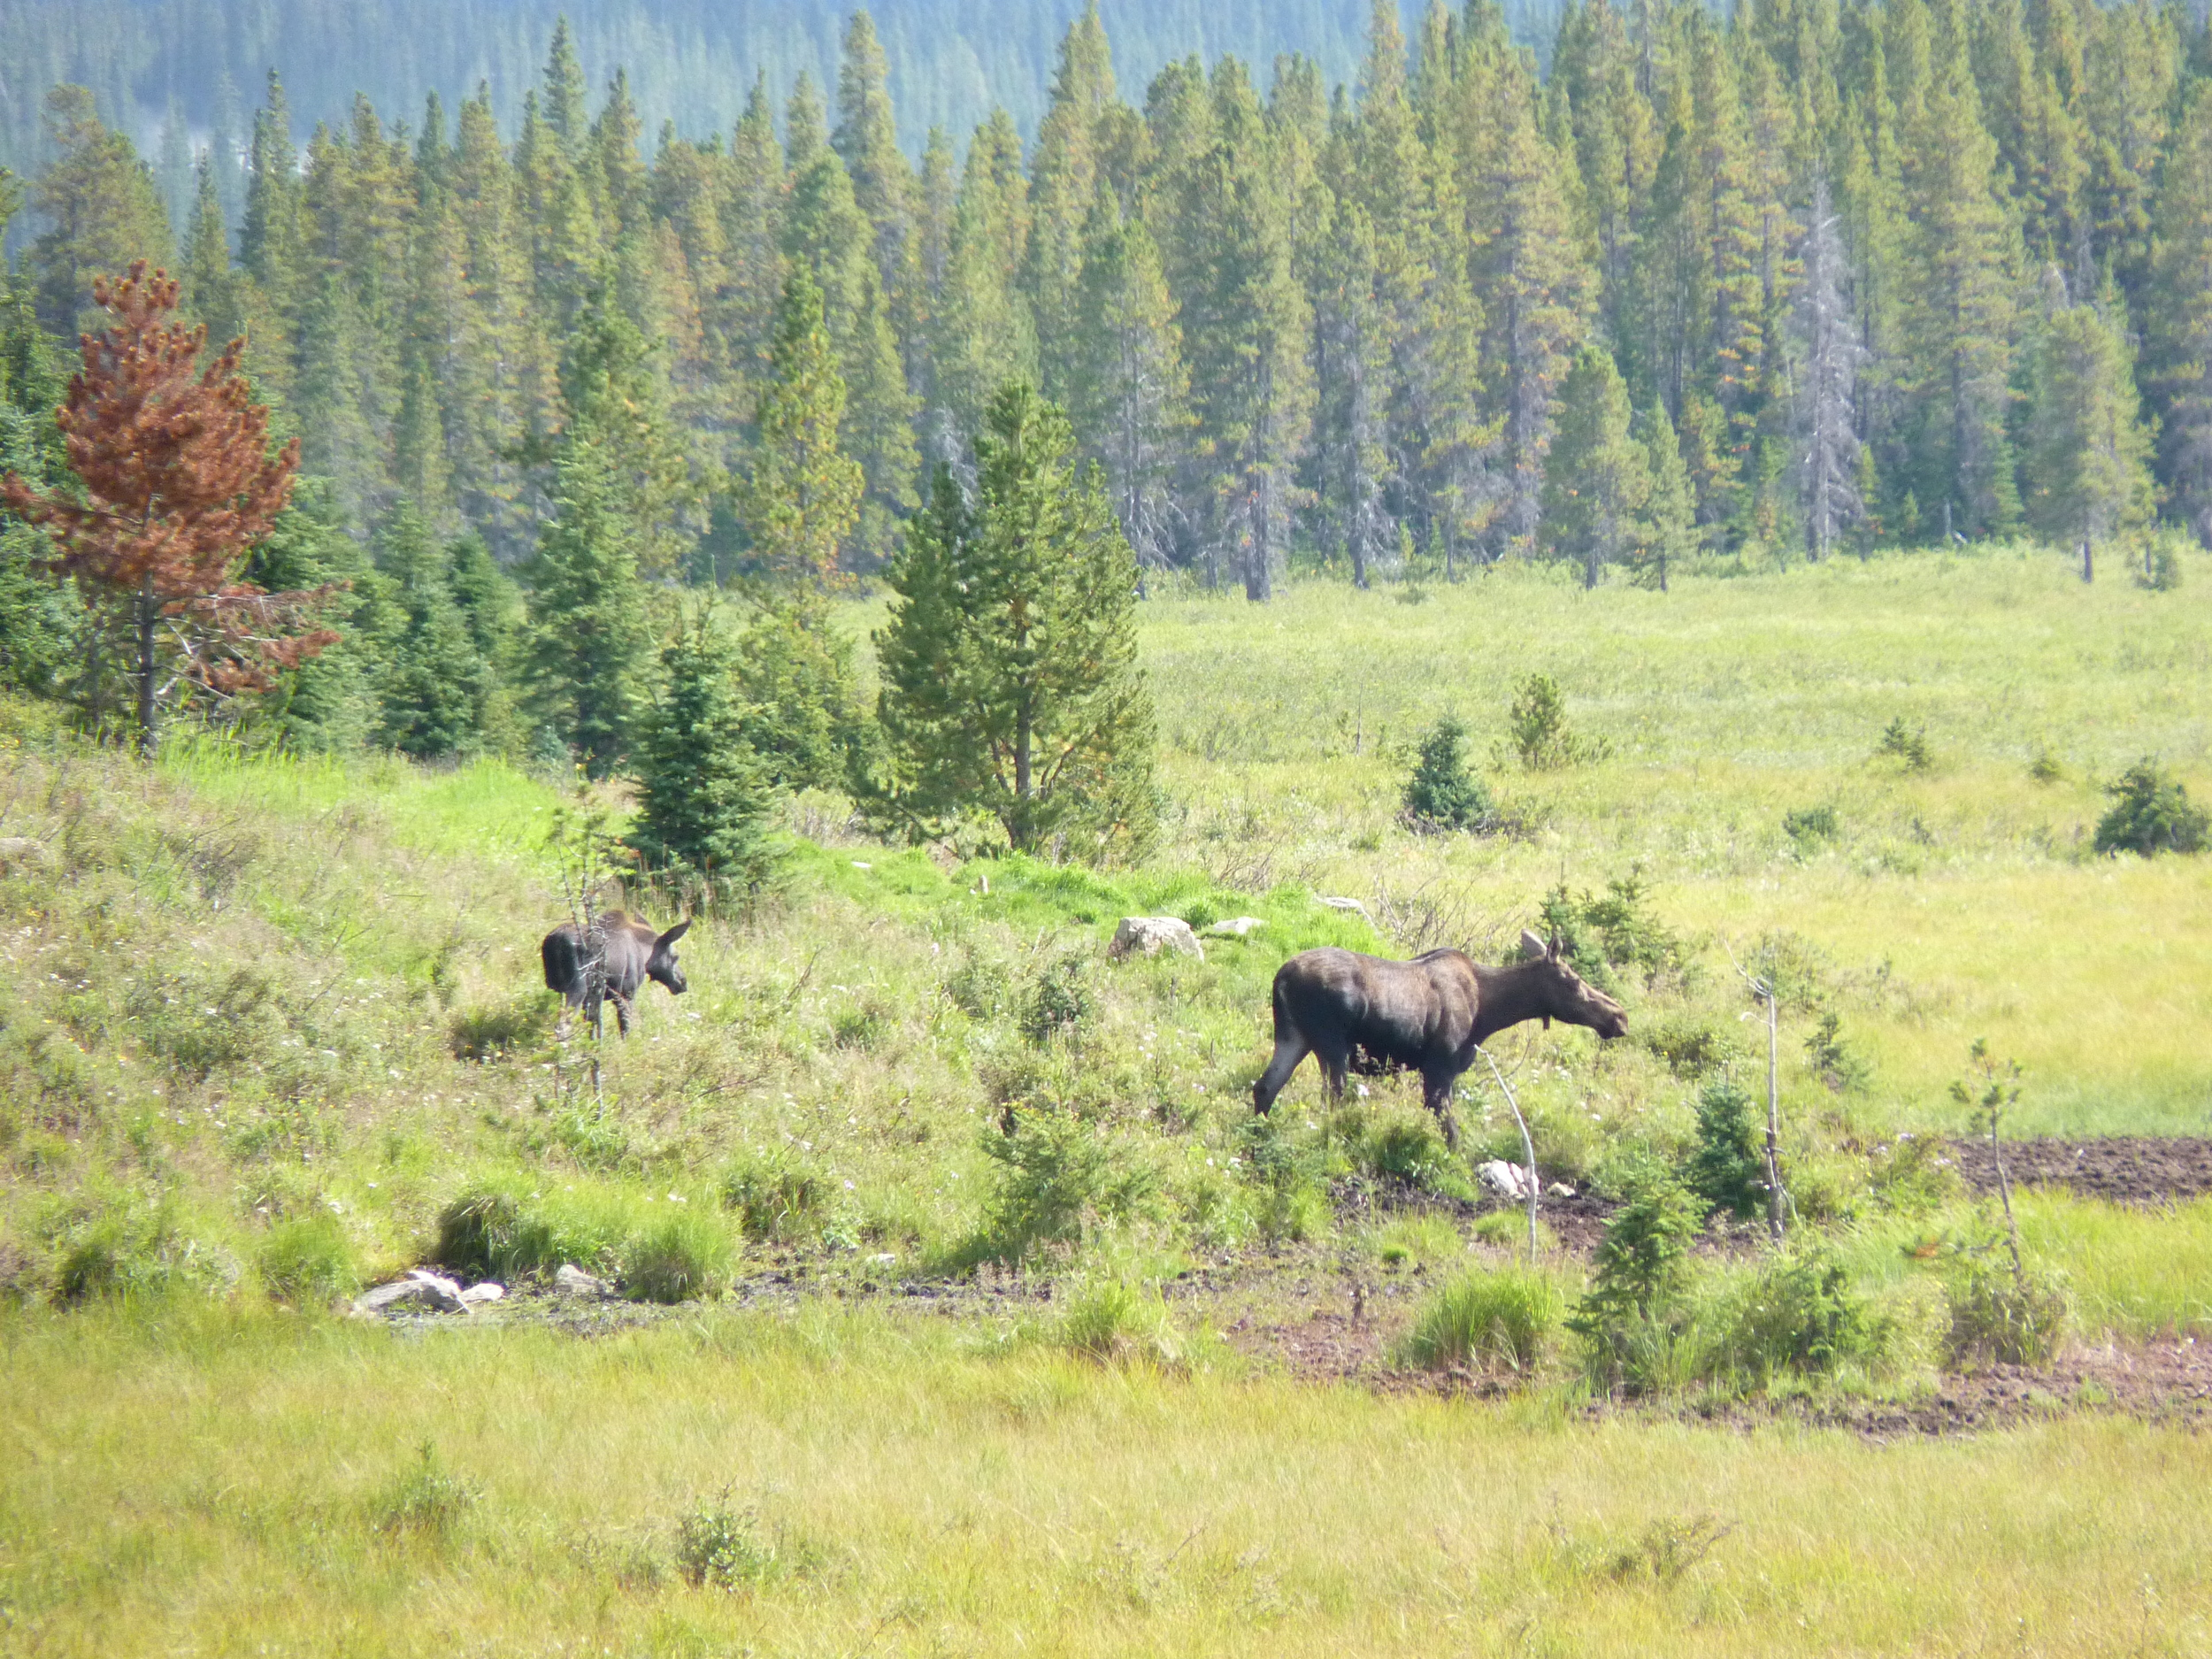 Moose, Kananaskis Country